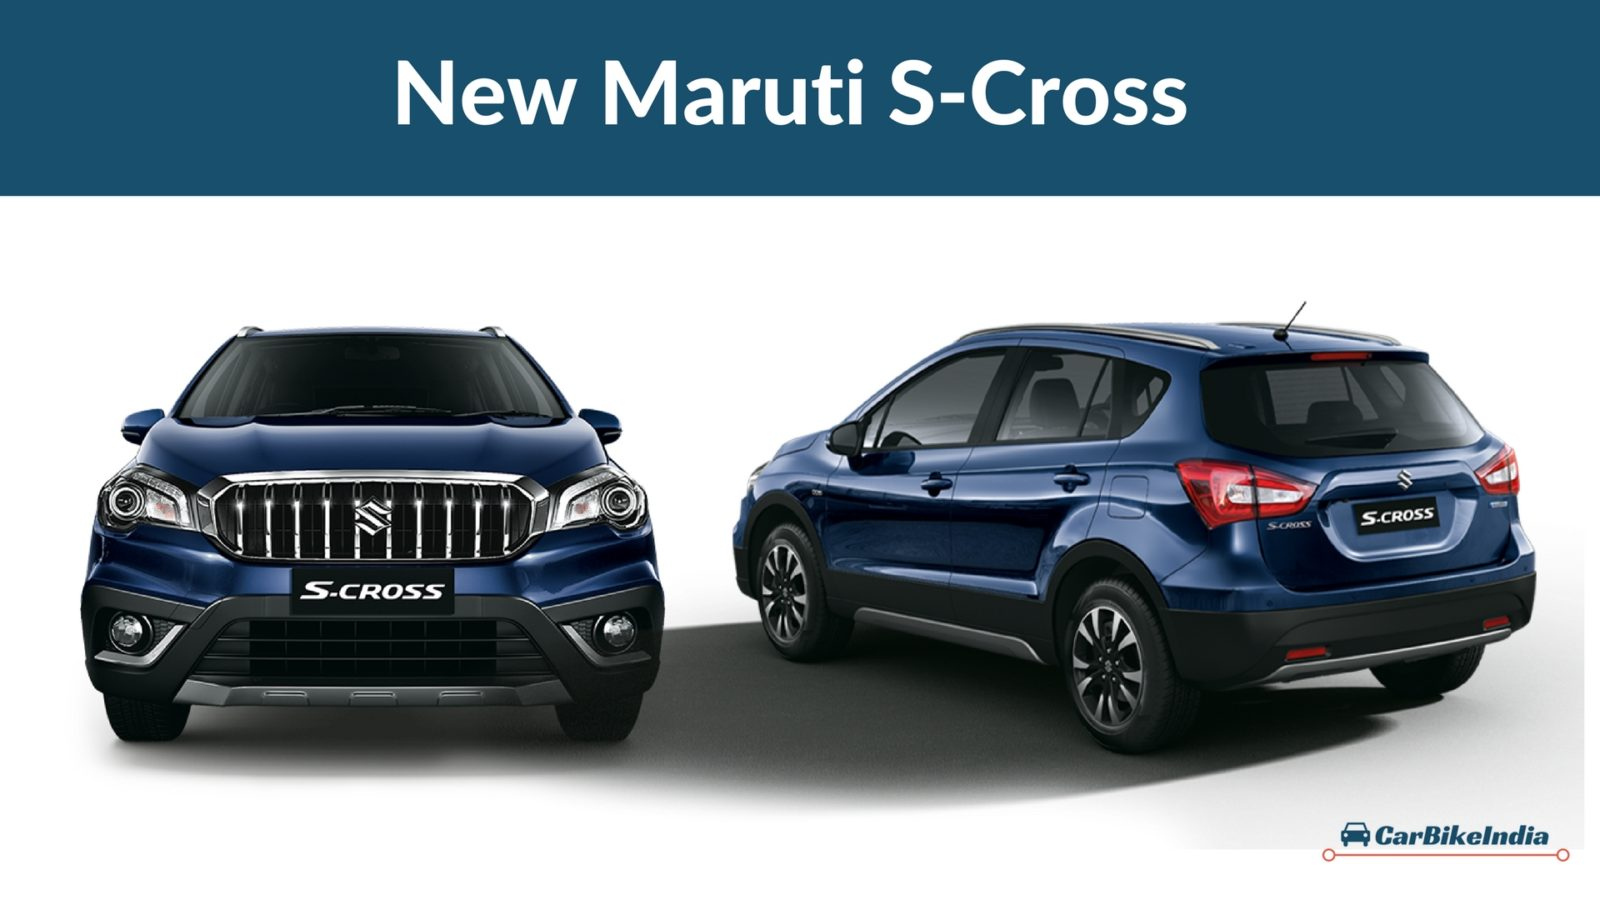 New Maruti S-Cross 2017